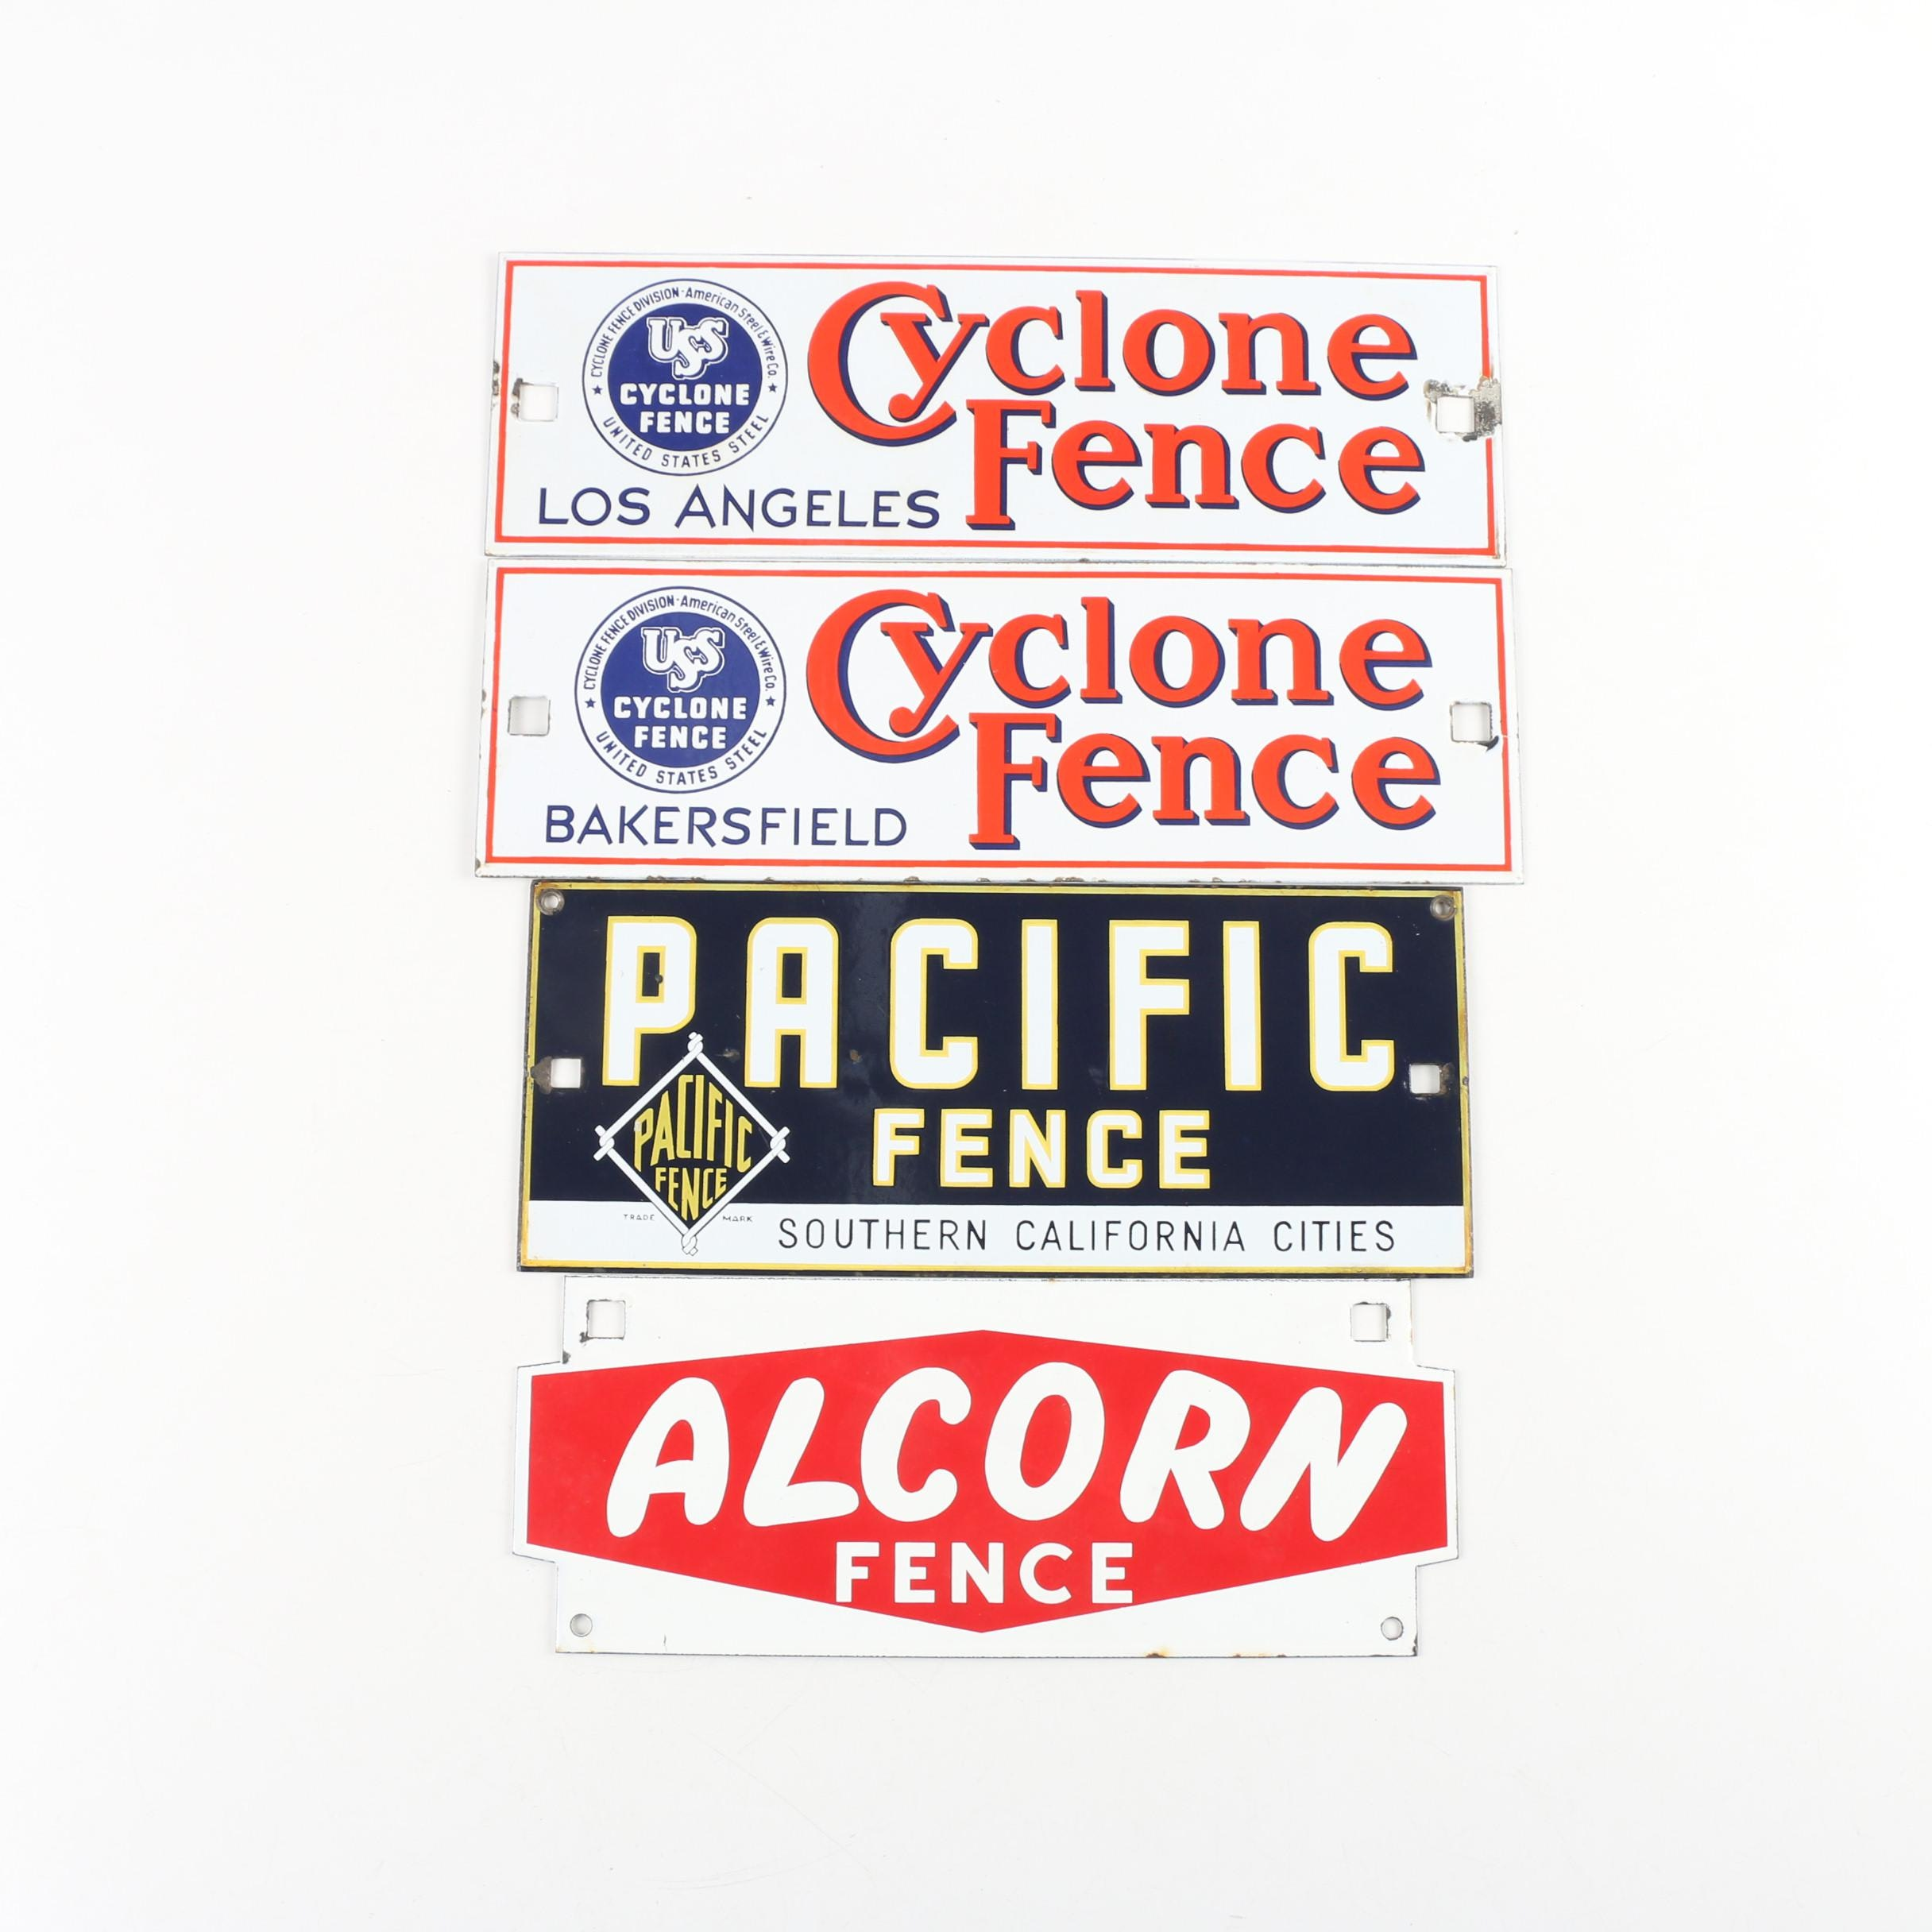 Alcorn, Pacific Fence, and Cyclone Fence Enameled Metal Signs